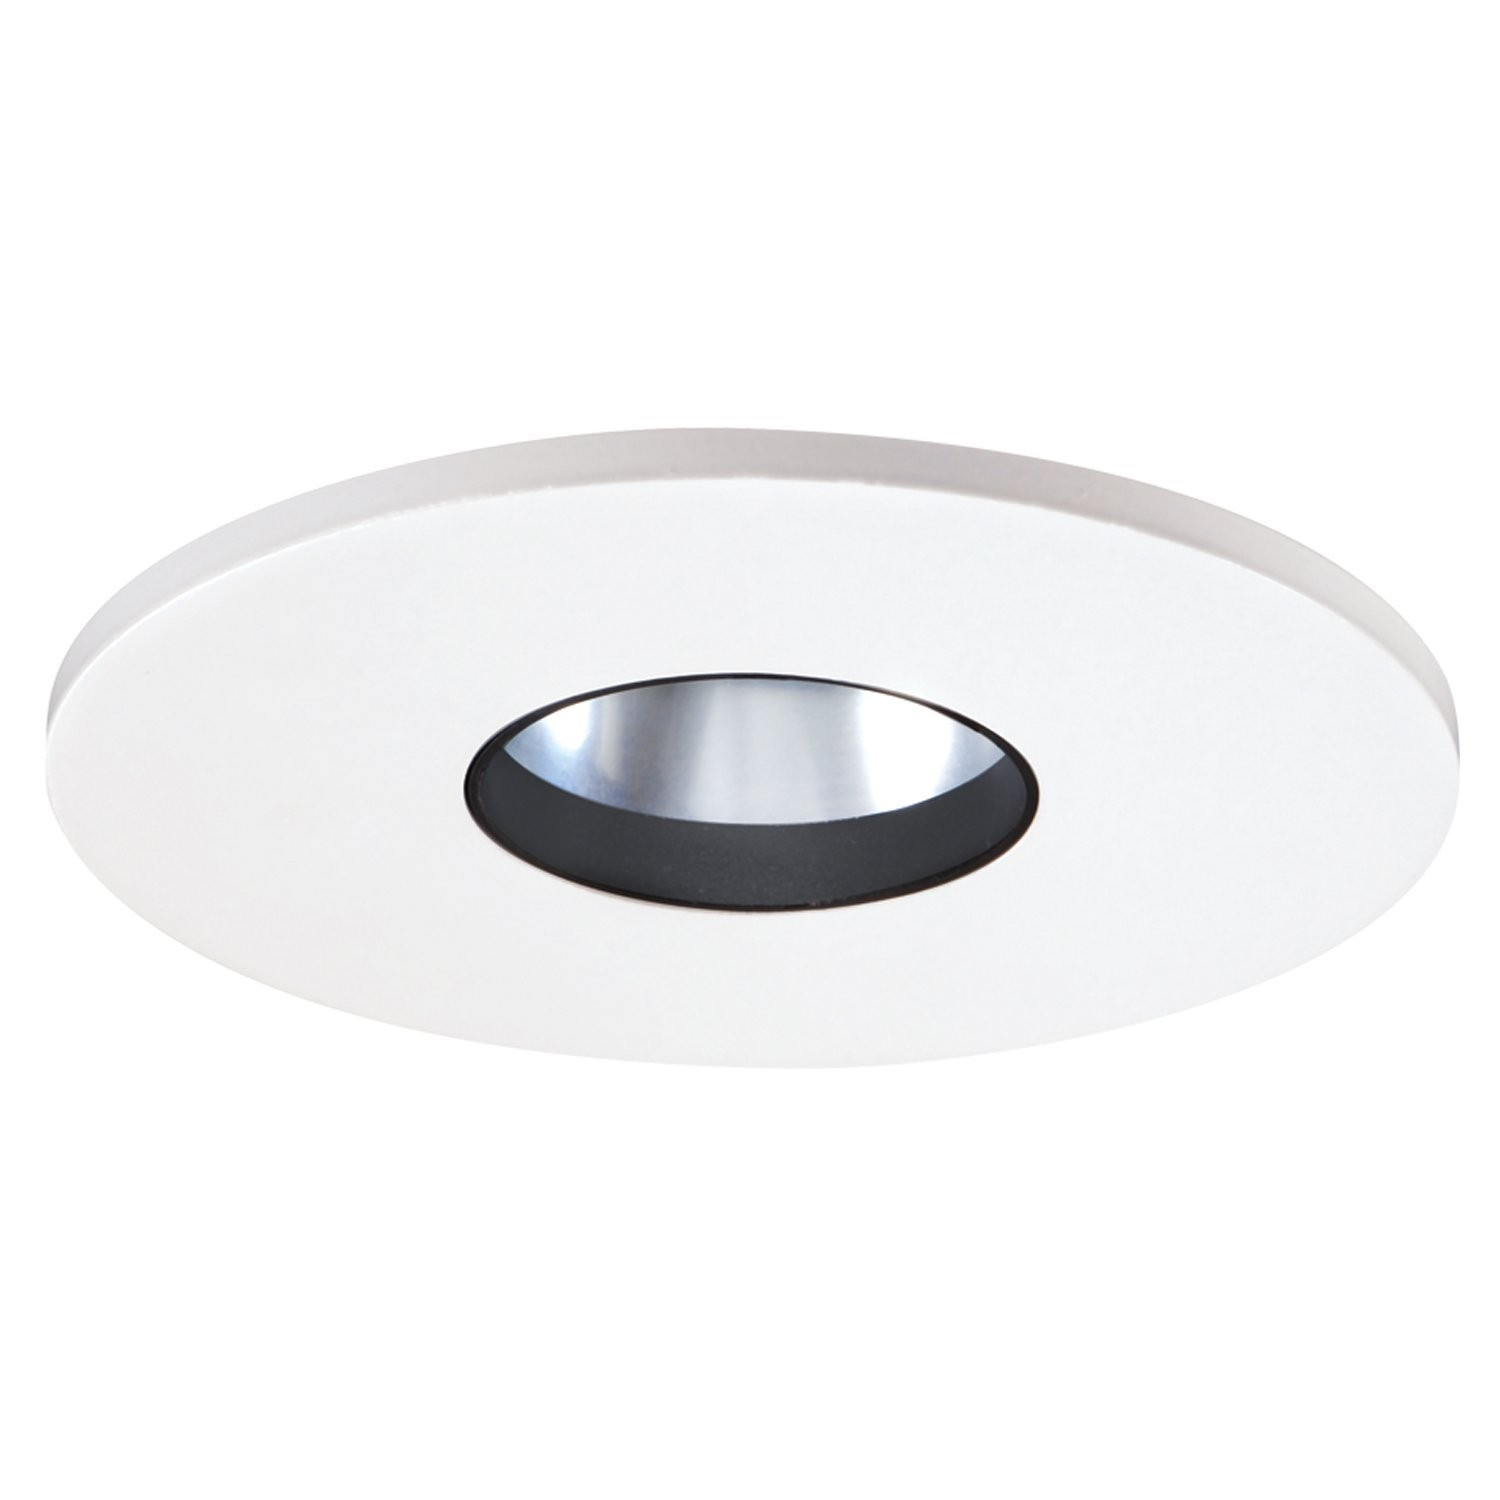 "Bathroom Lights Low Voltage halo 3002whc recessed lighting trim, 3"" low voltage adjustable"